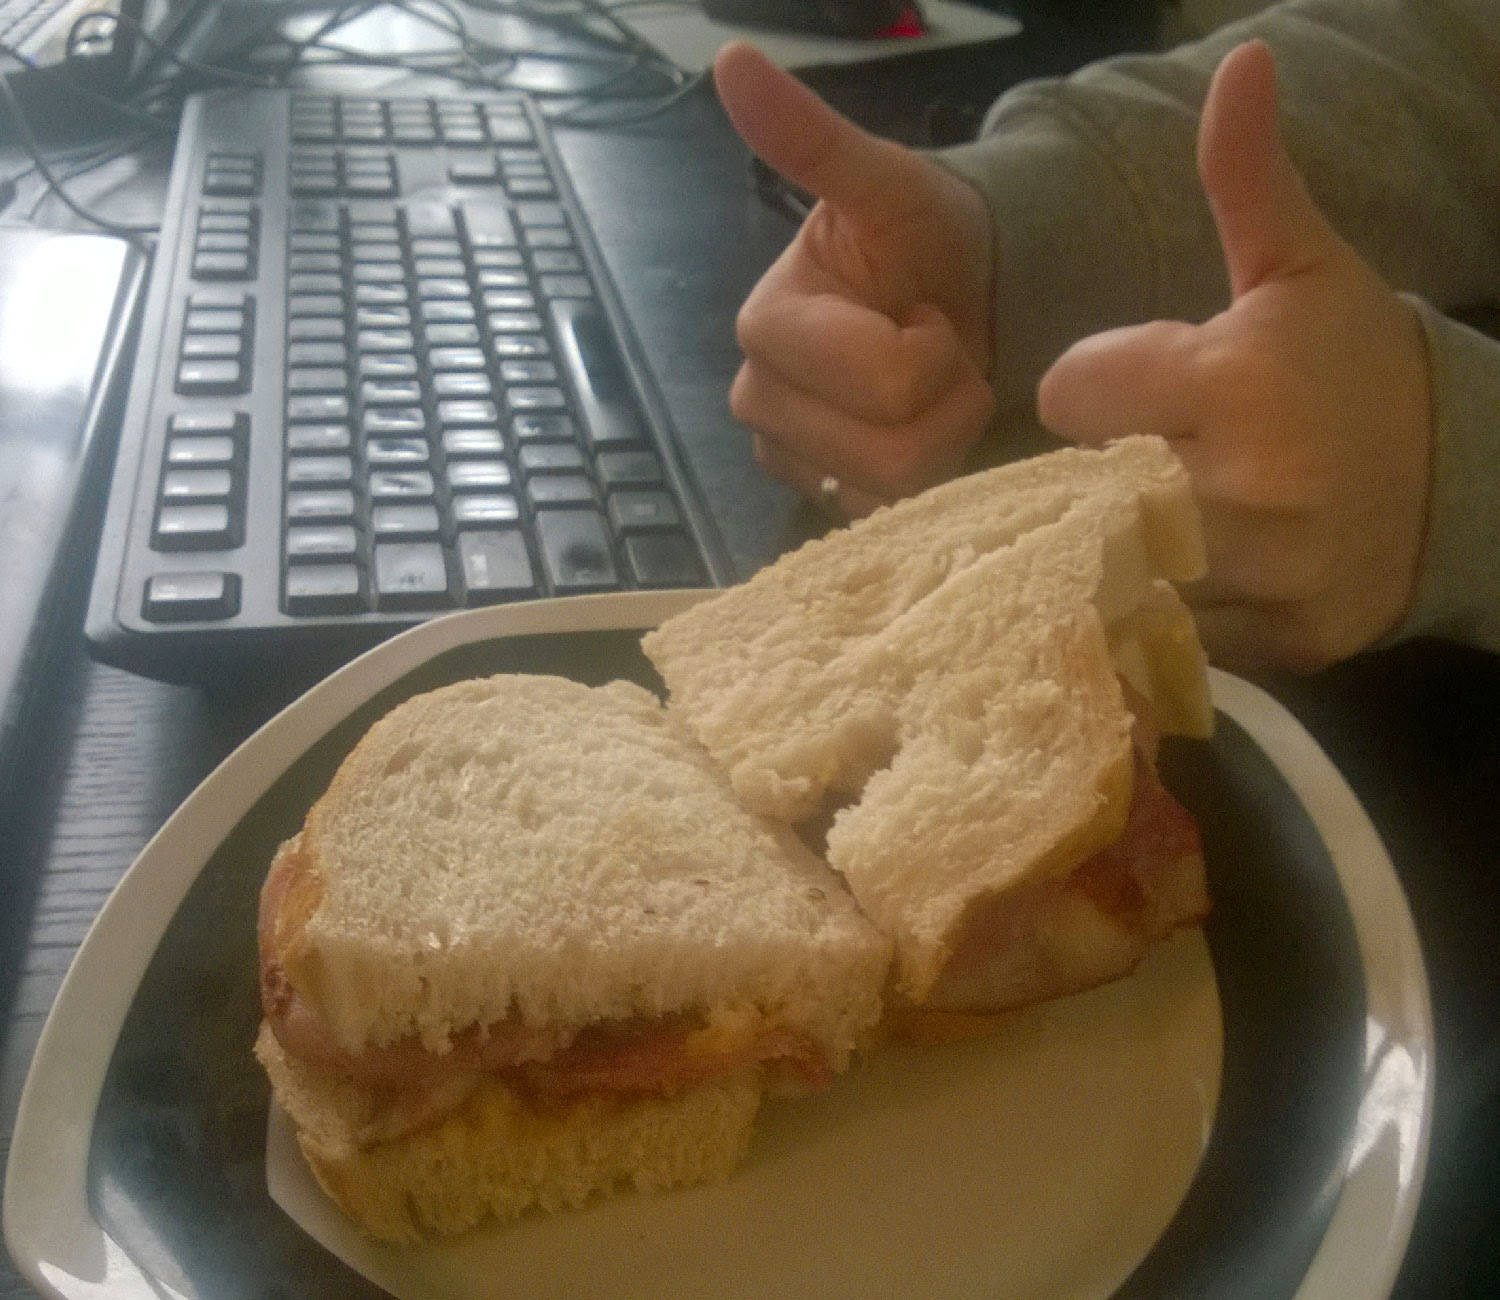 Thumbs up for the bacon butty